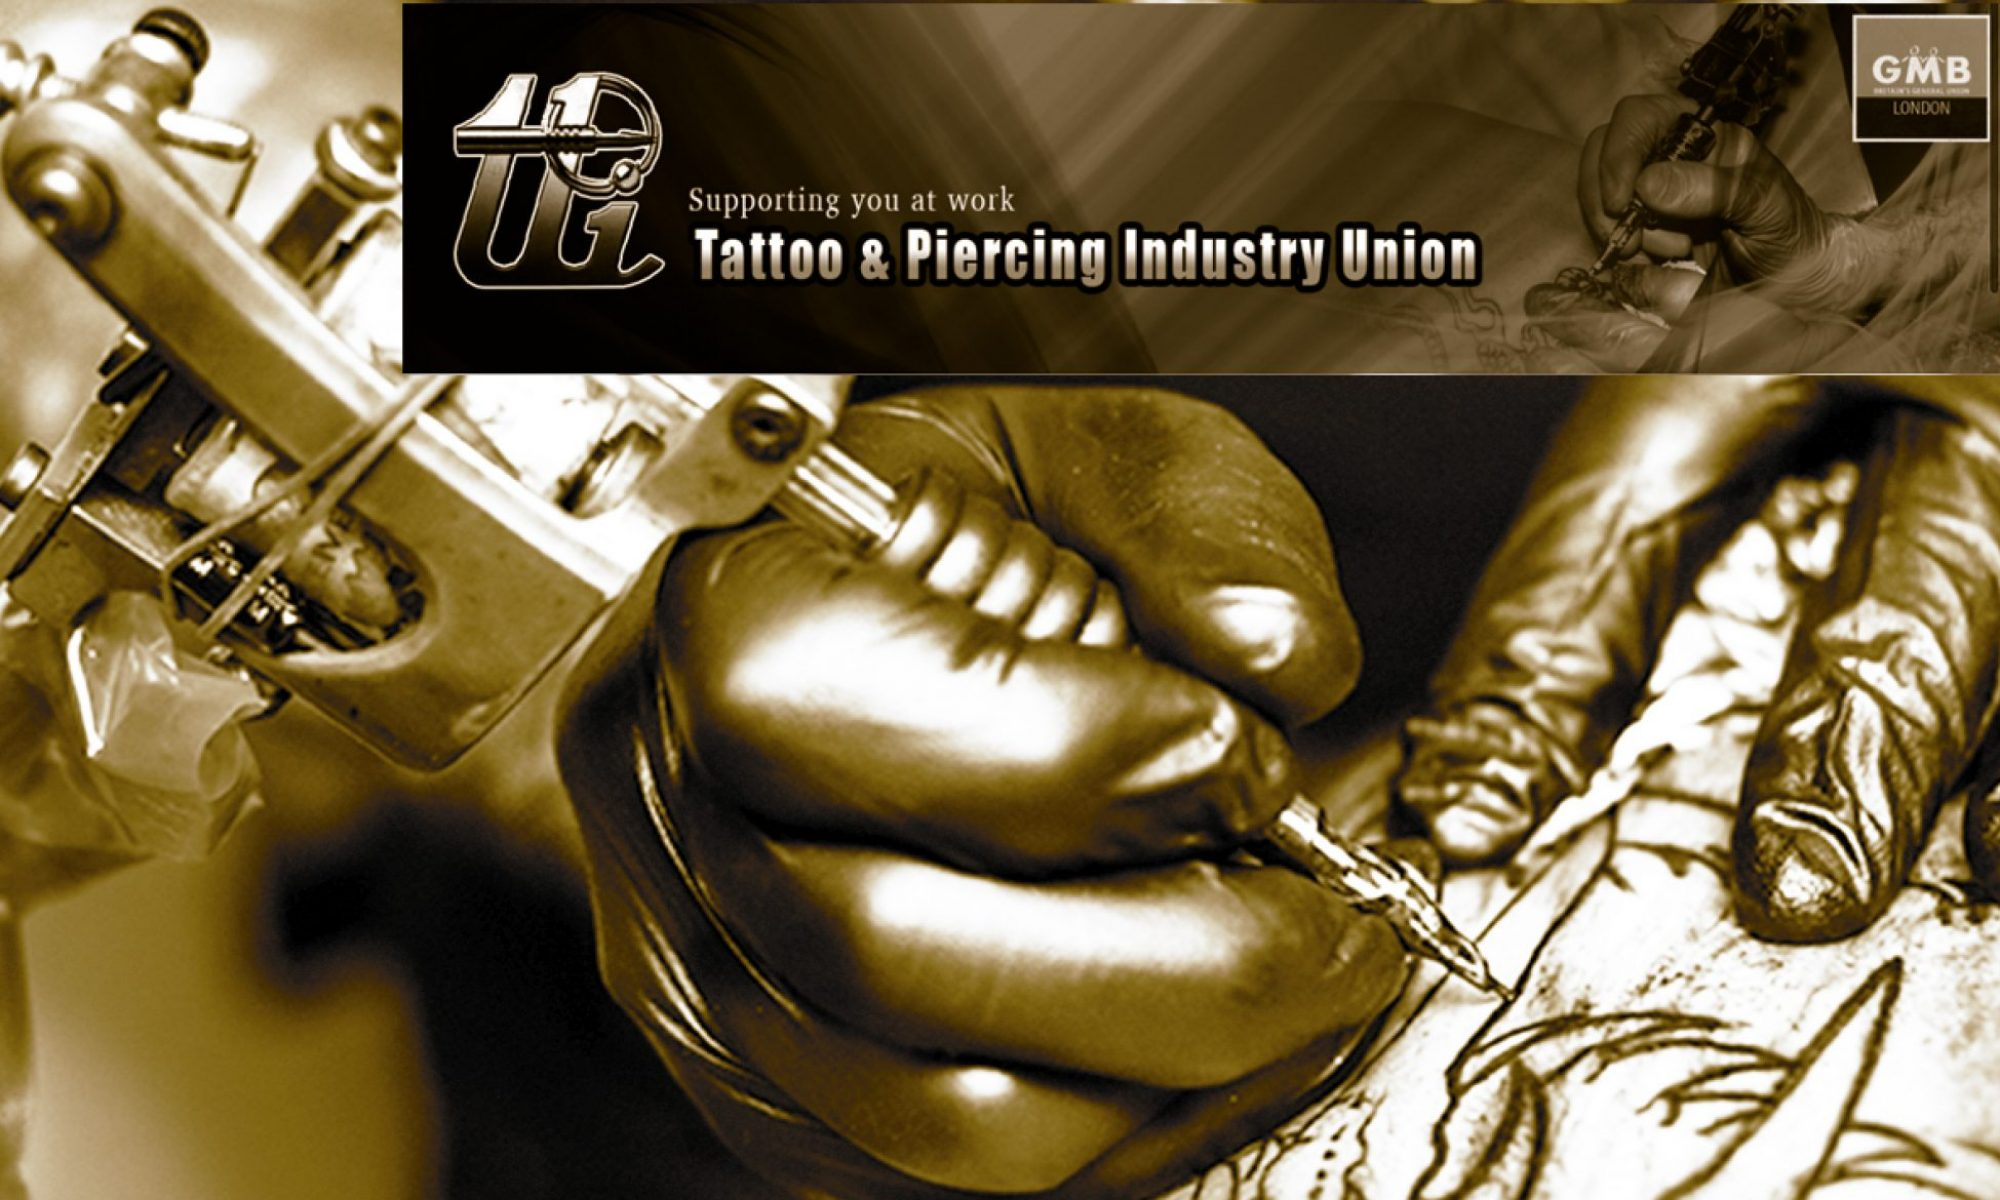 Tattoo and Piercing Industry Union